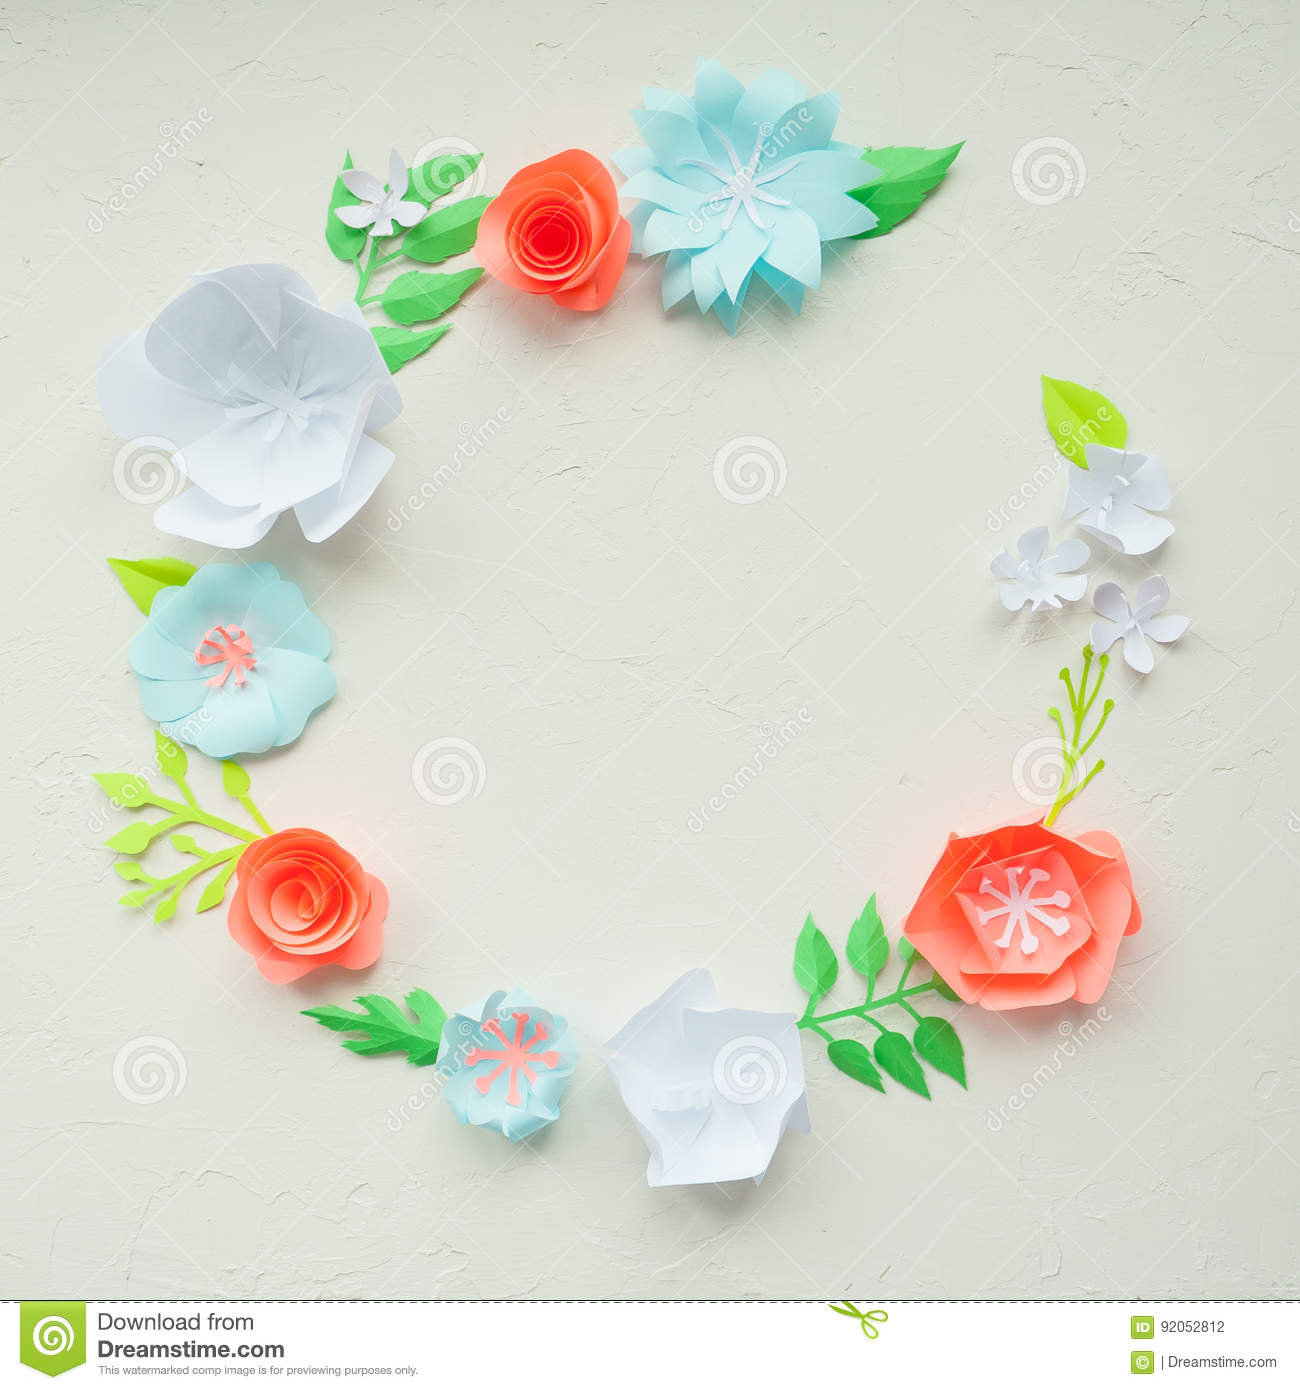 Round Frame With Color Paper Flowers On The White Stucco Flat Lay